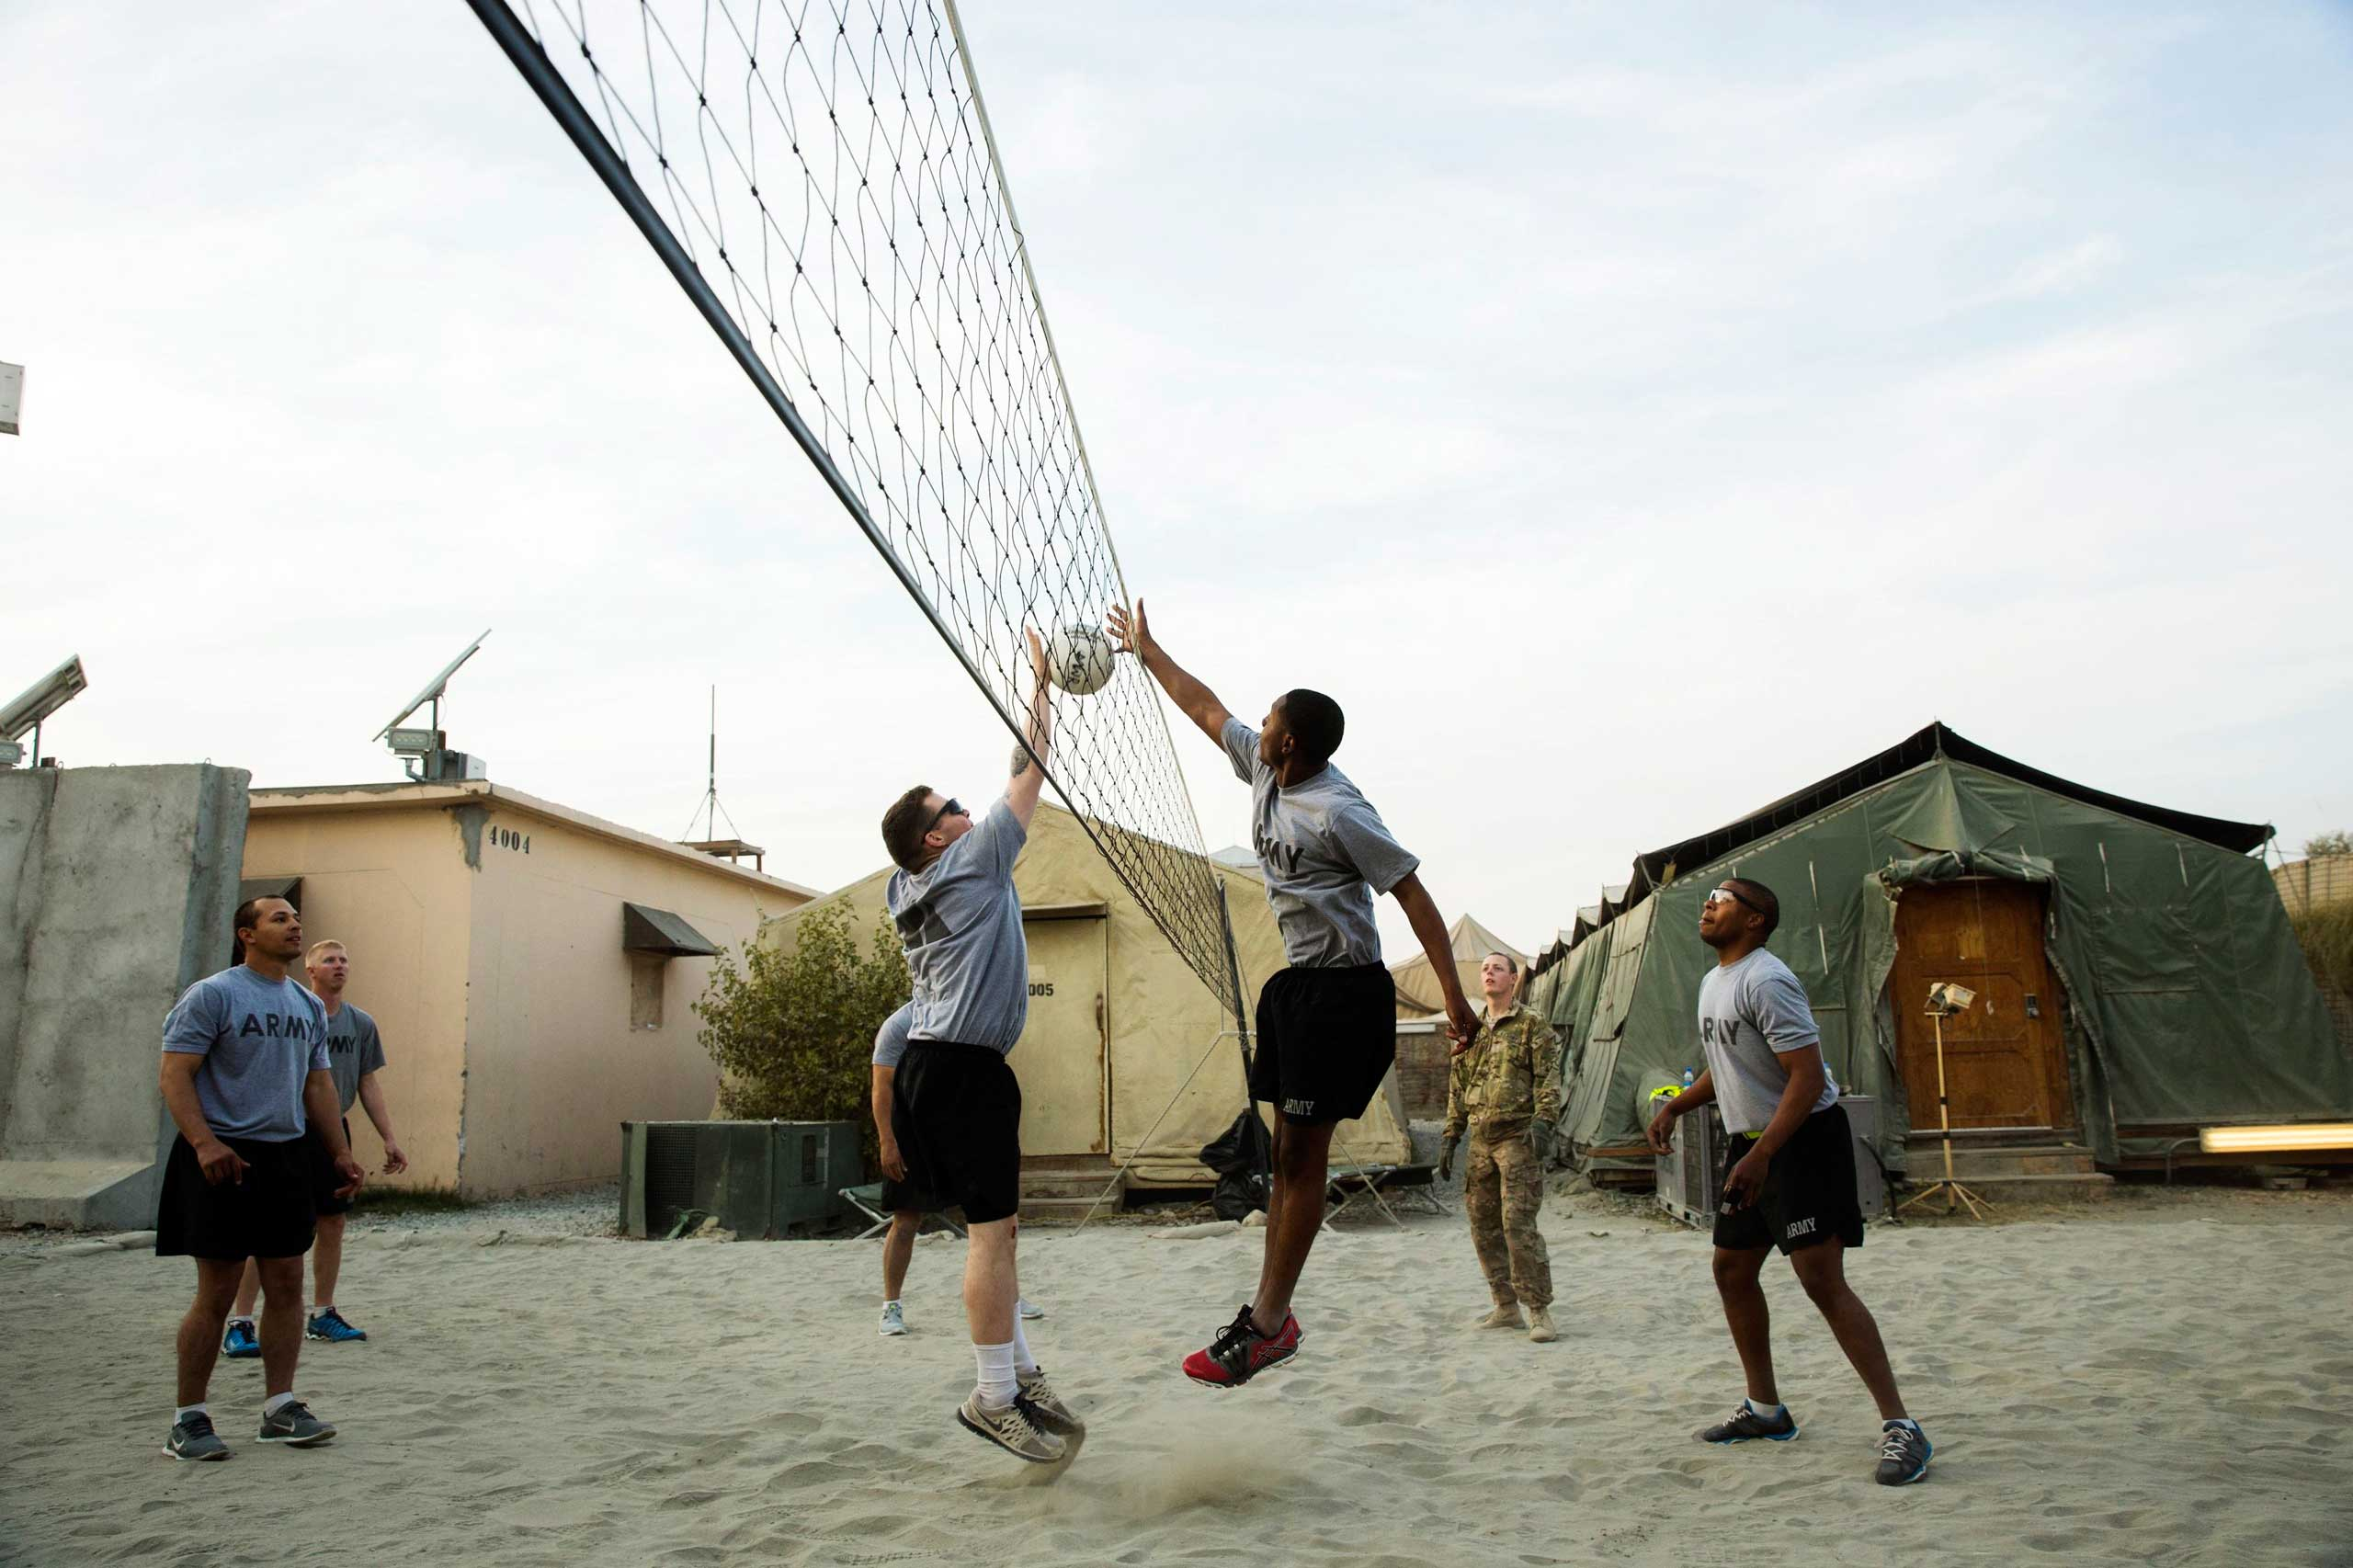 U.S. soldiers play volleyball at forward operating base Fenty in the Nangarhar province of Afghanistan on Dec. 21, 2014.